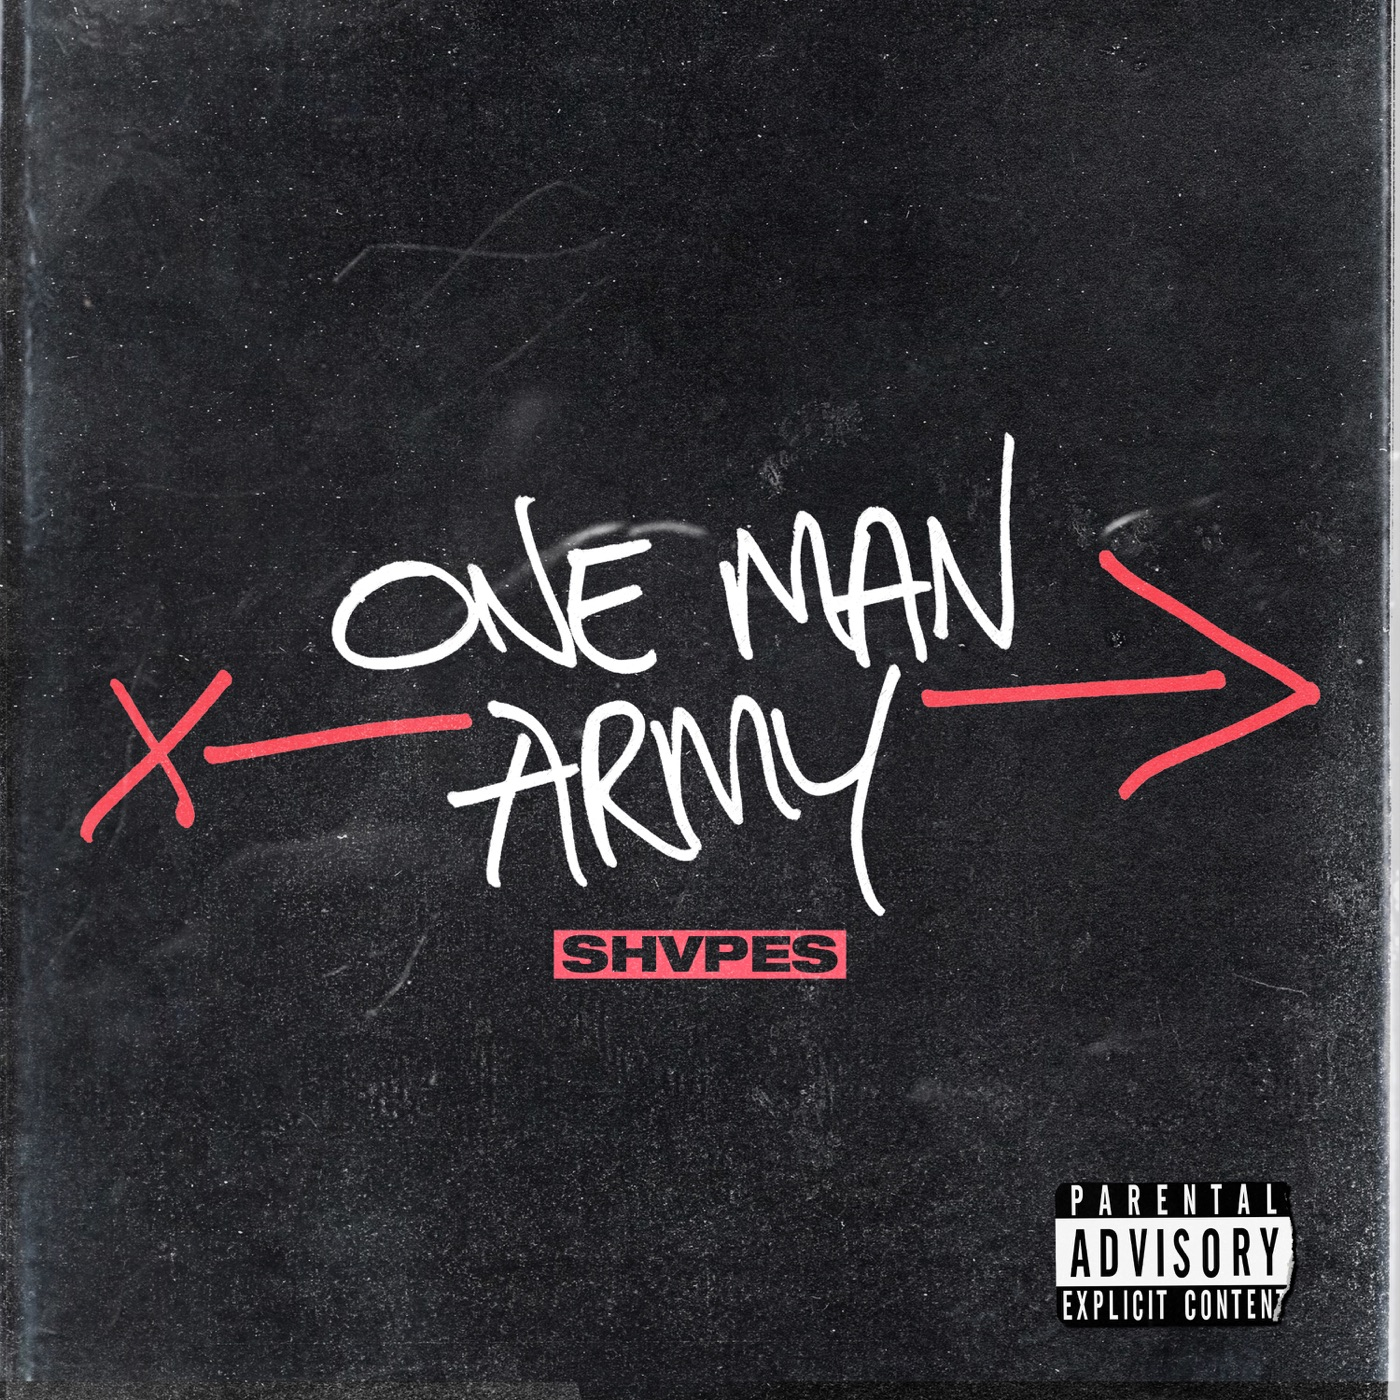 SHVPES - One Man Army [single] (2019)